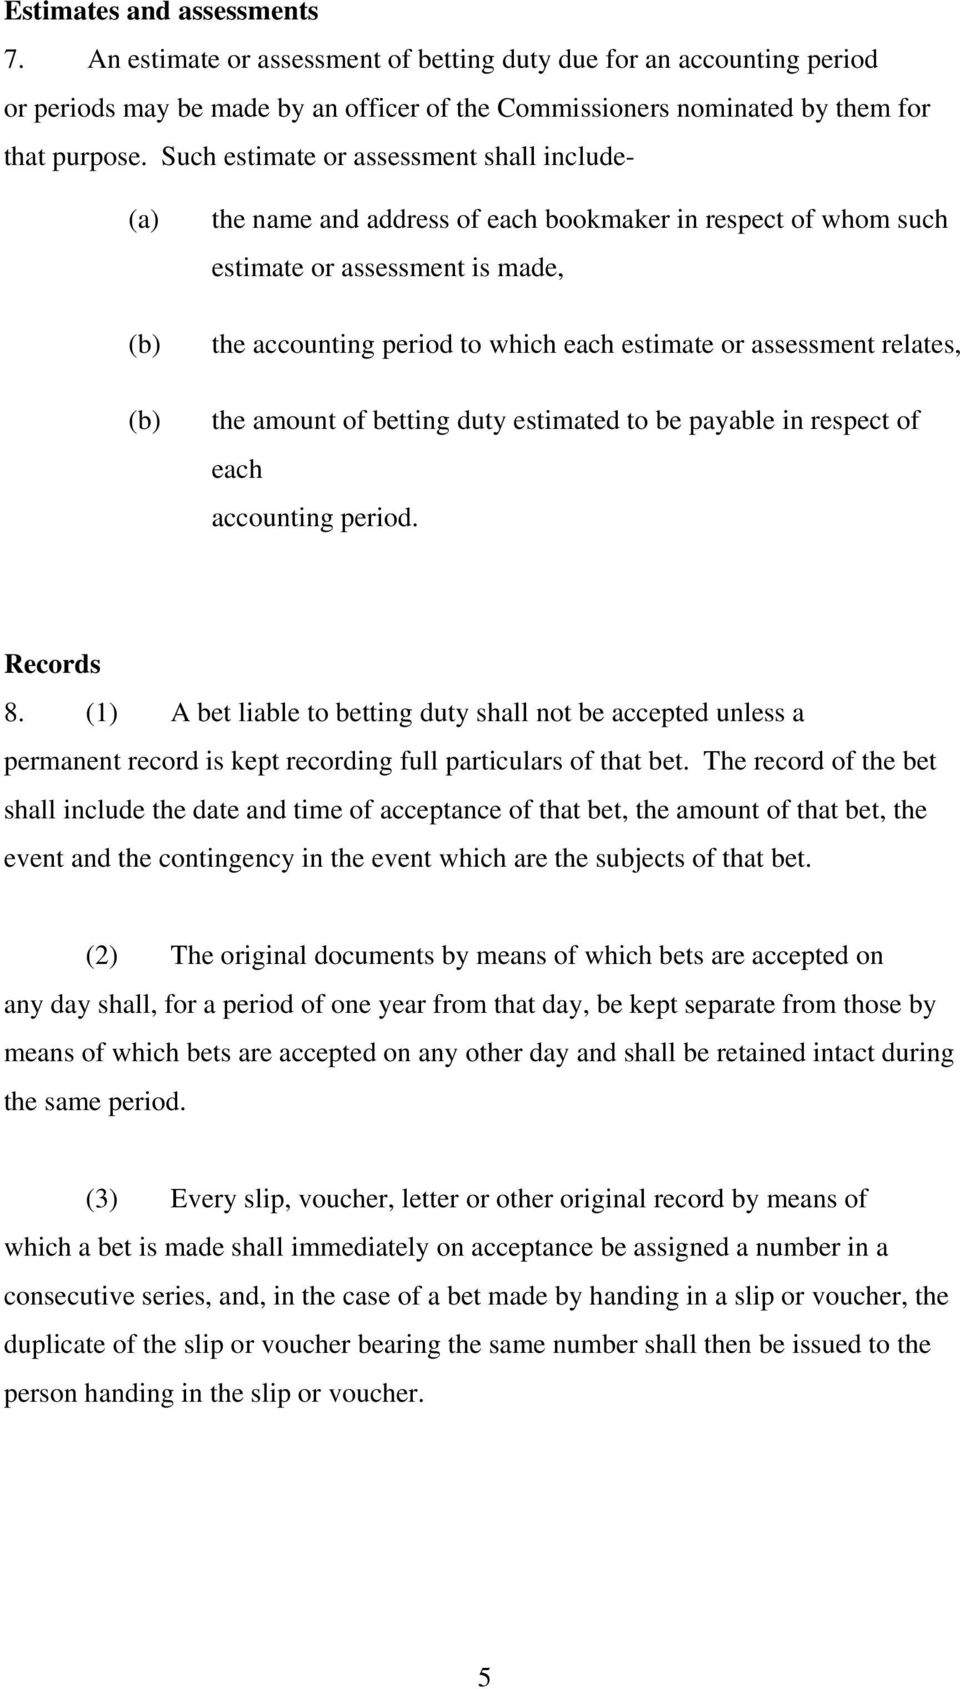 assessment relates, the amount of betting duty estimated to be payable in respect of each accounting period. Records 8.